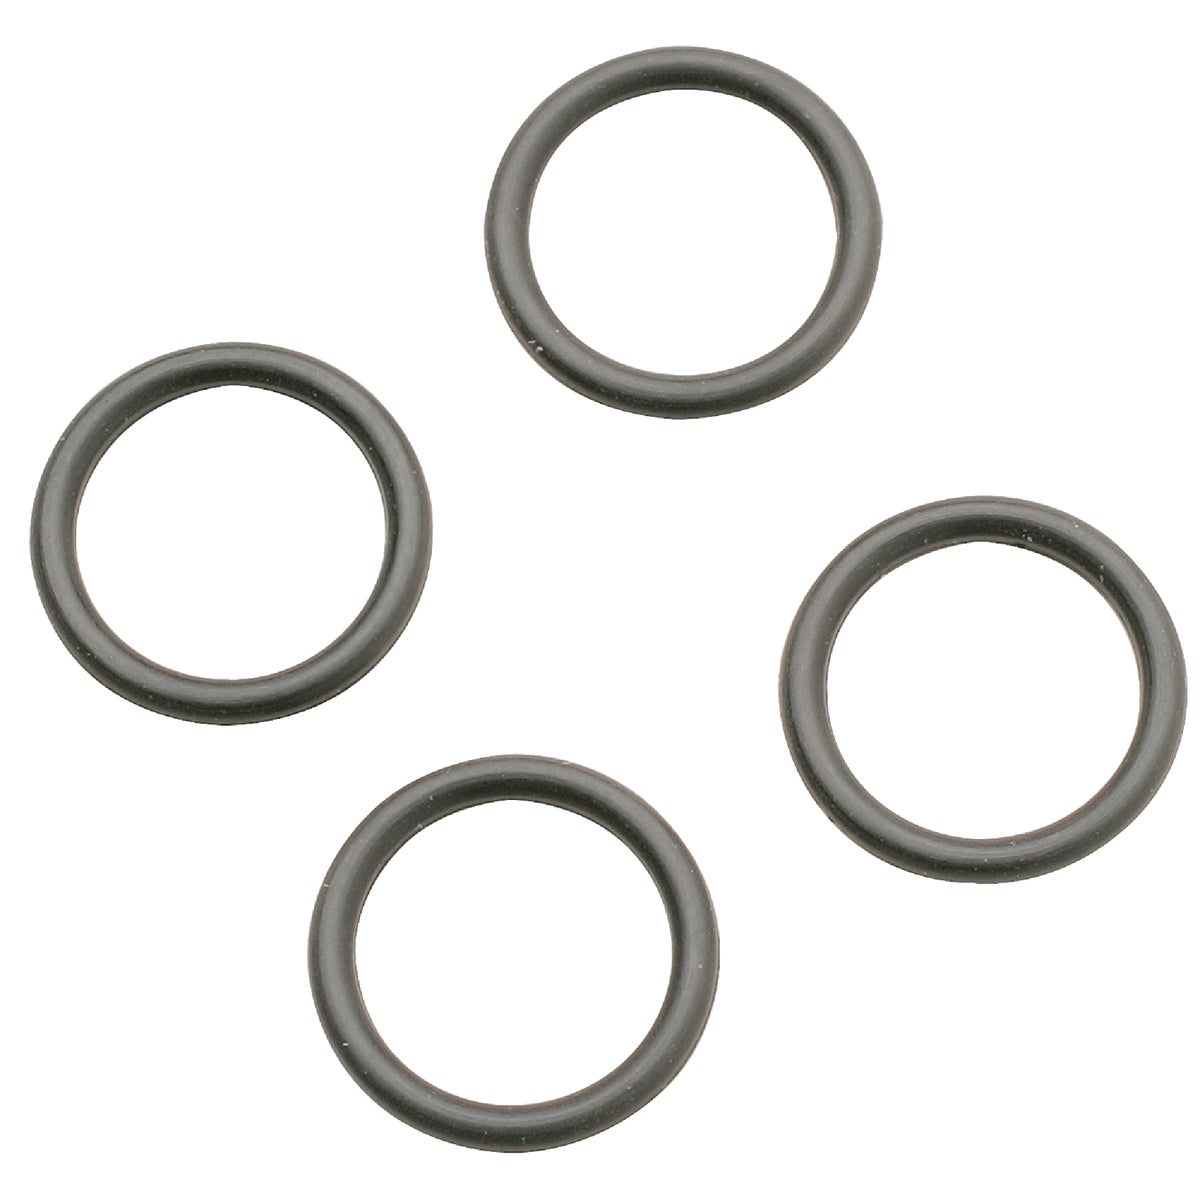 "11/16""ID O-RINGS - 402656 by Plumb Pak/keeney Mfg"